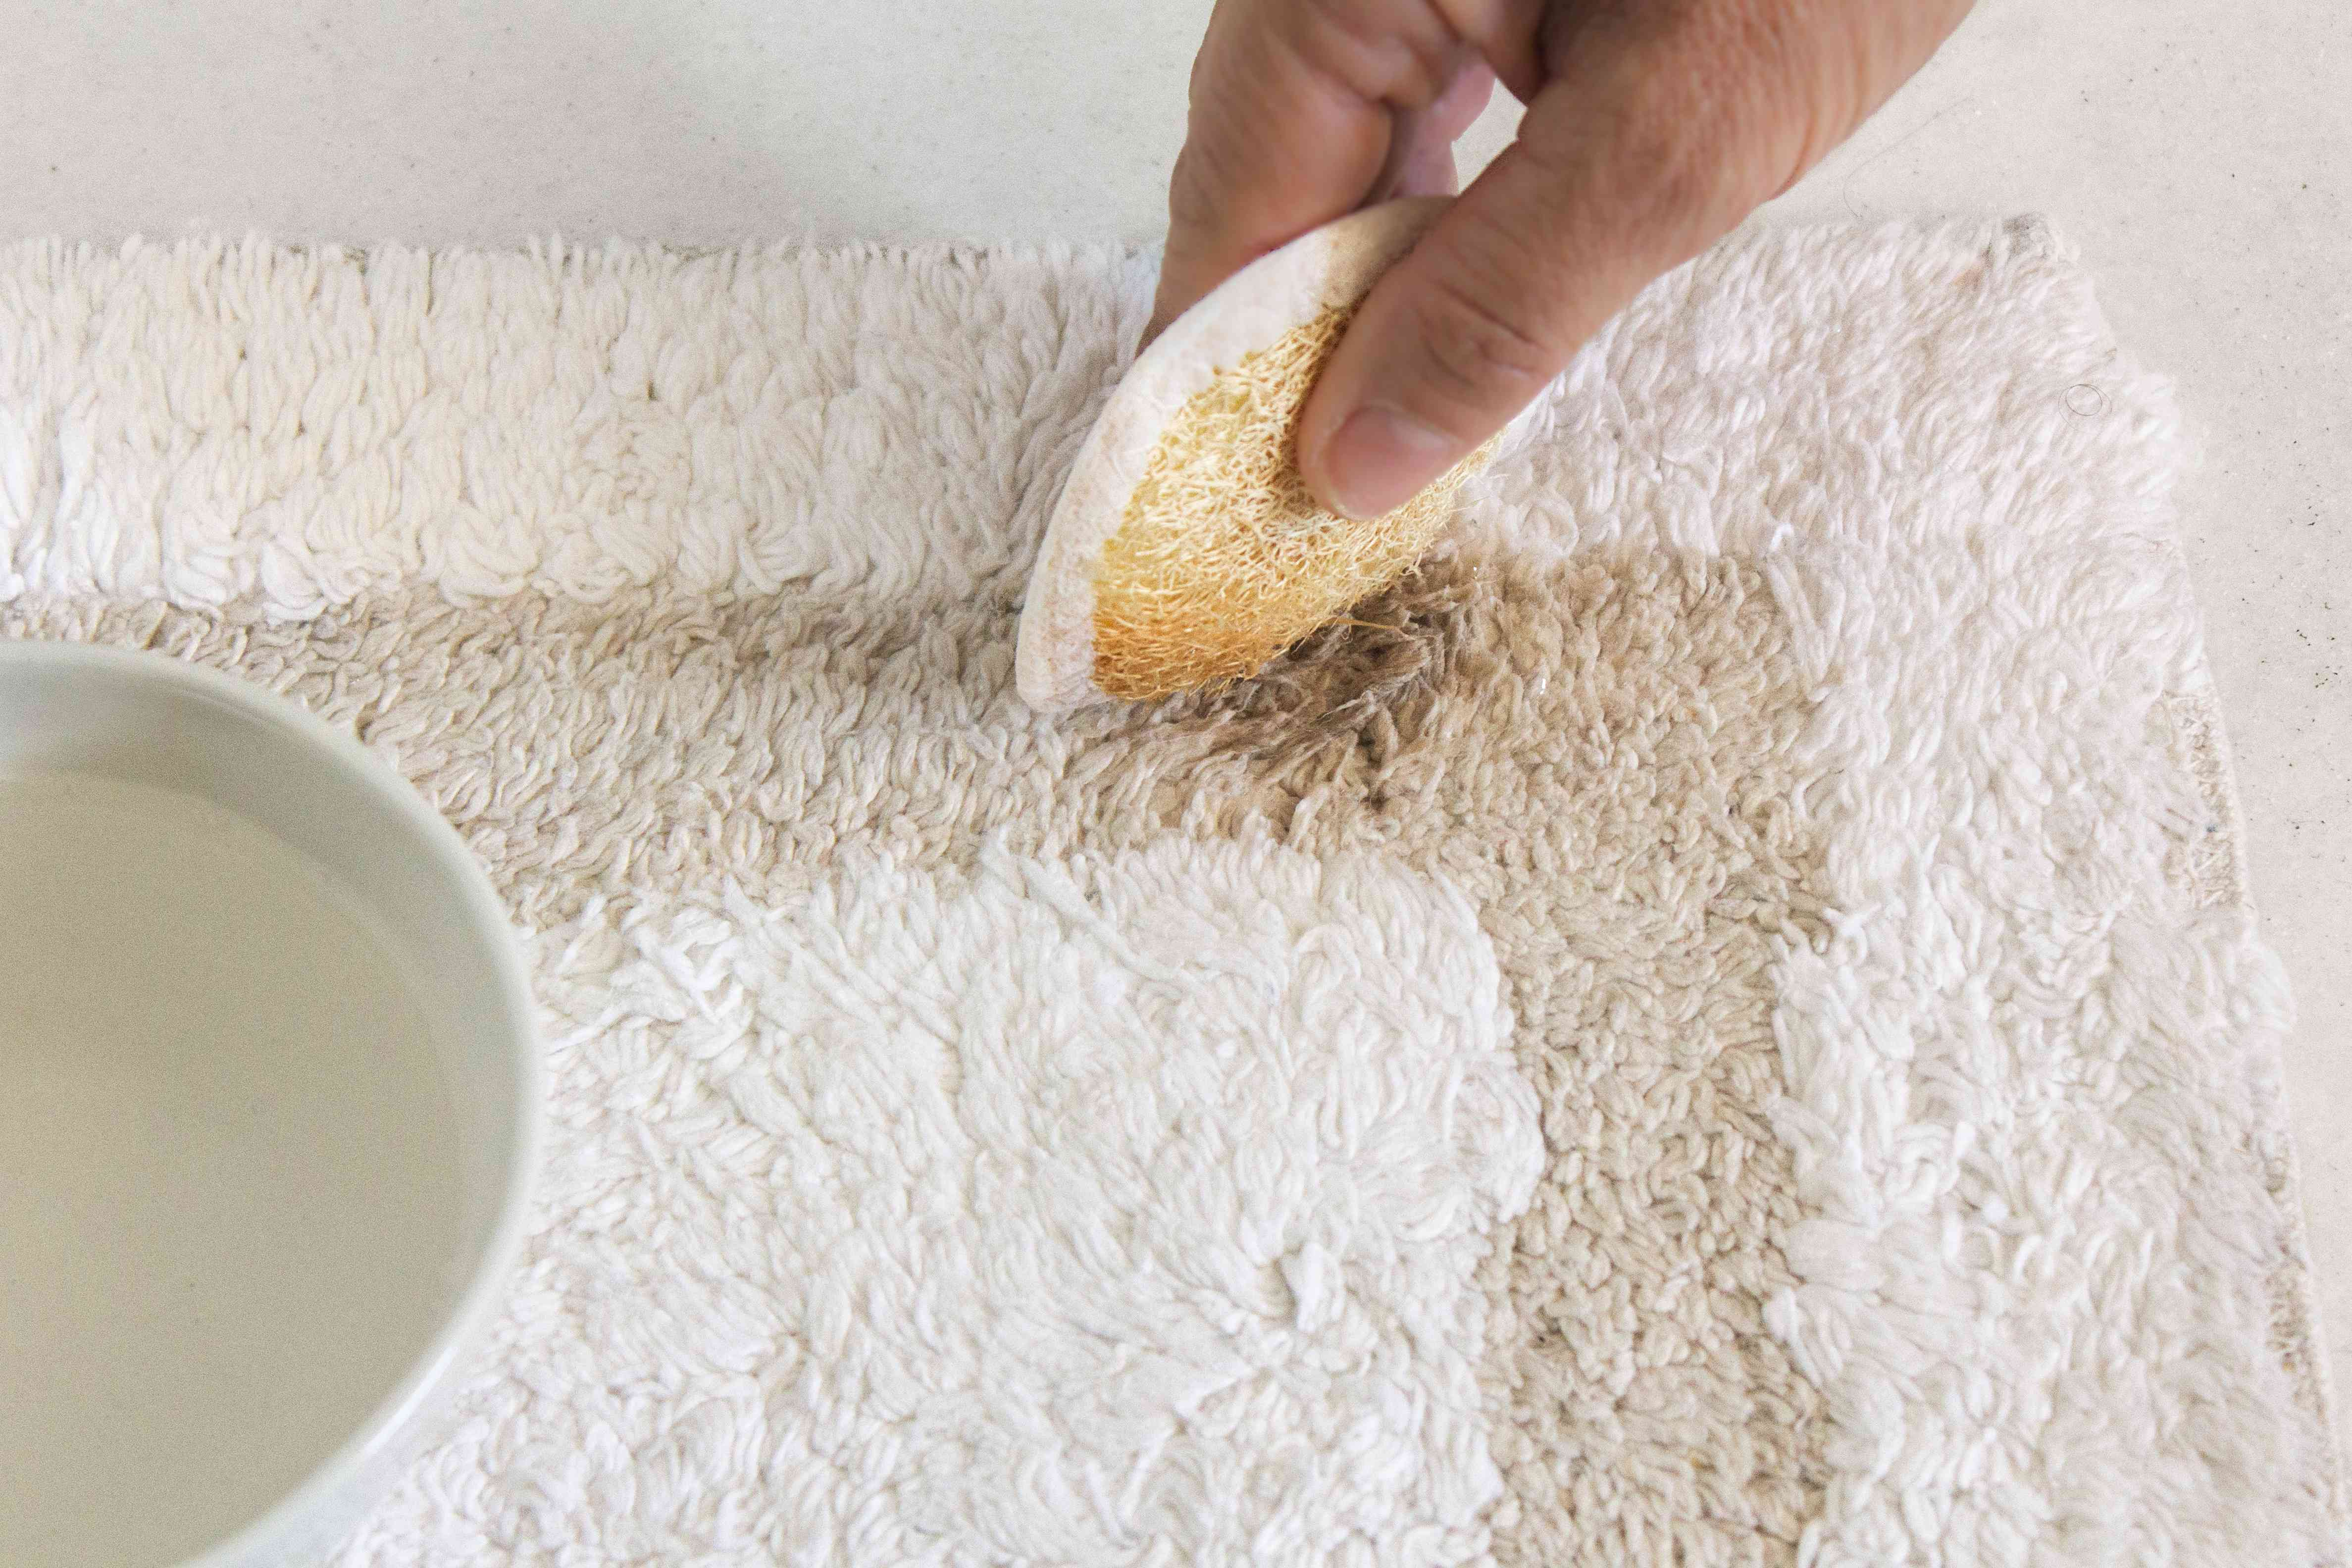 using a sponge on a stained bathroom rug